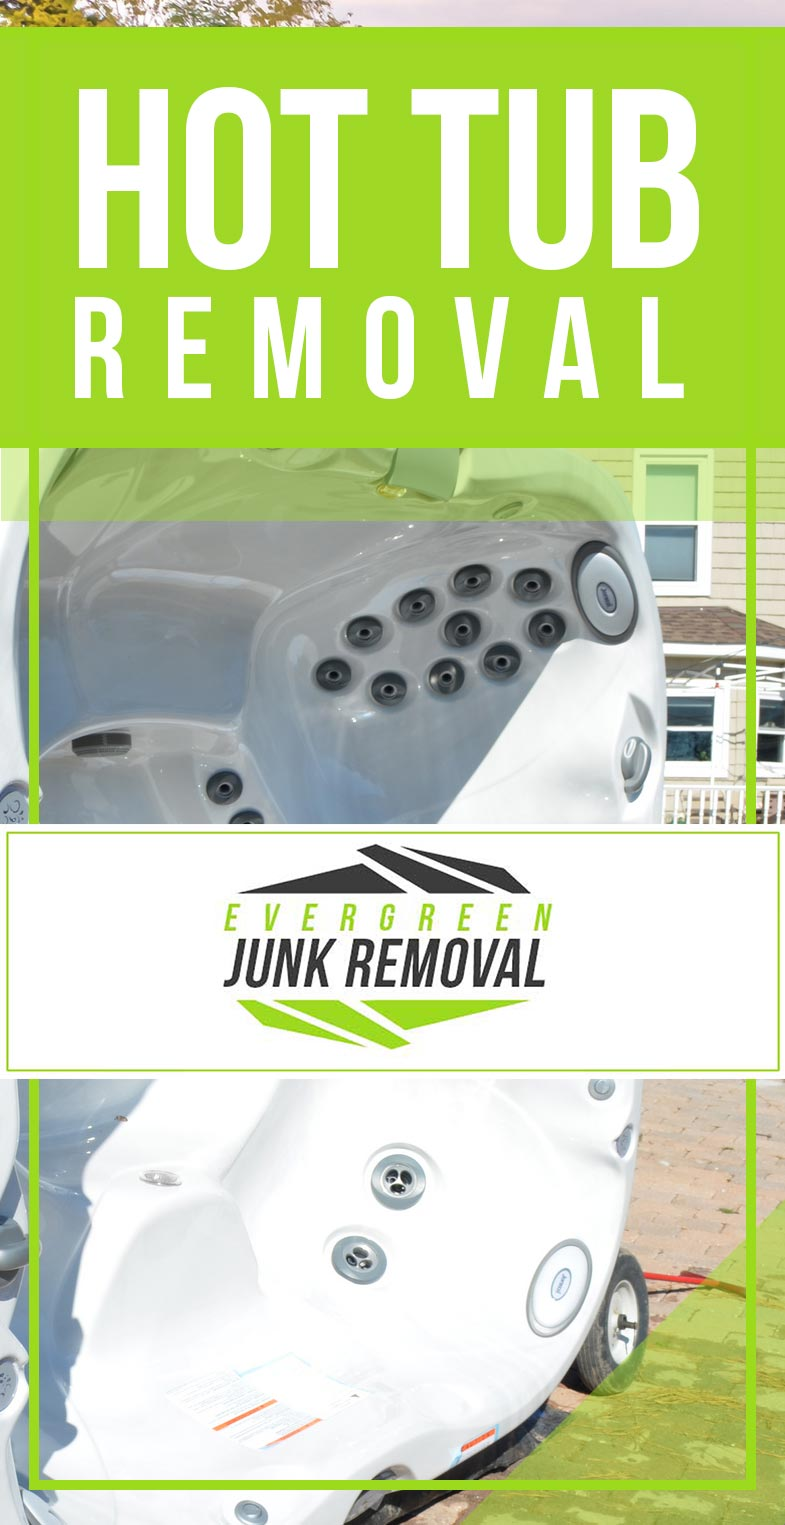 Newport Beach Hot Tub Removal